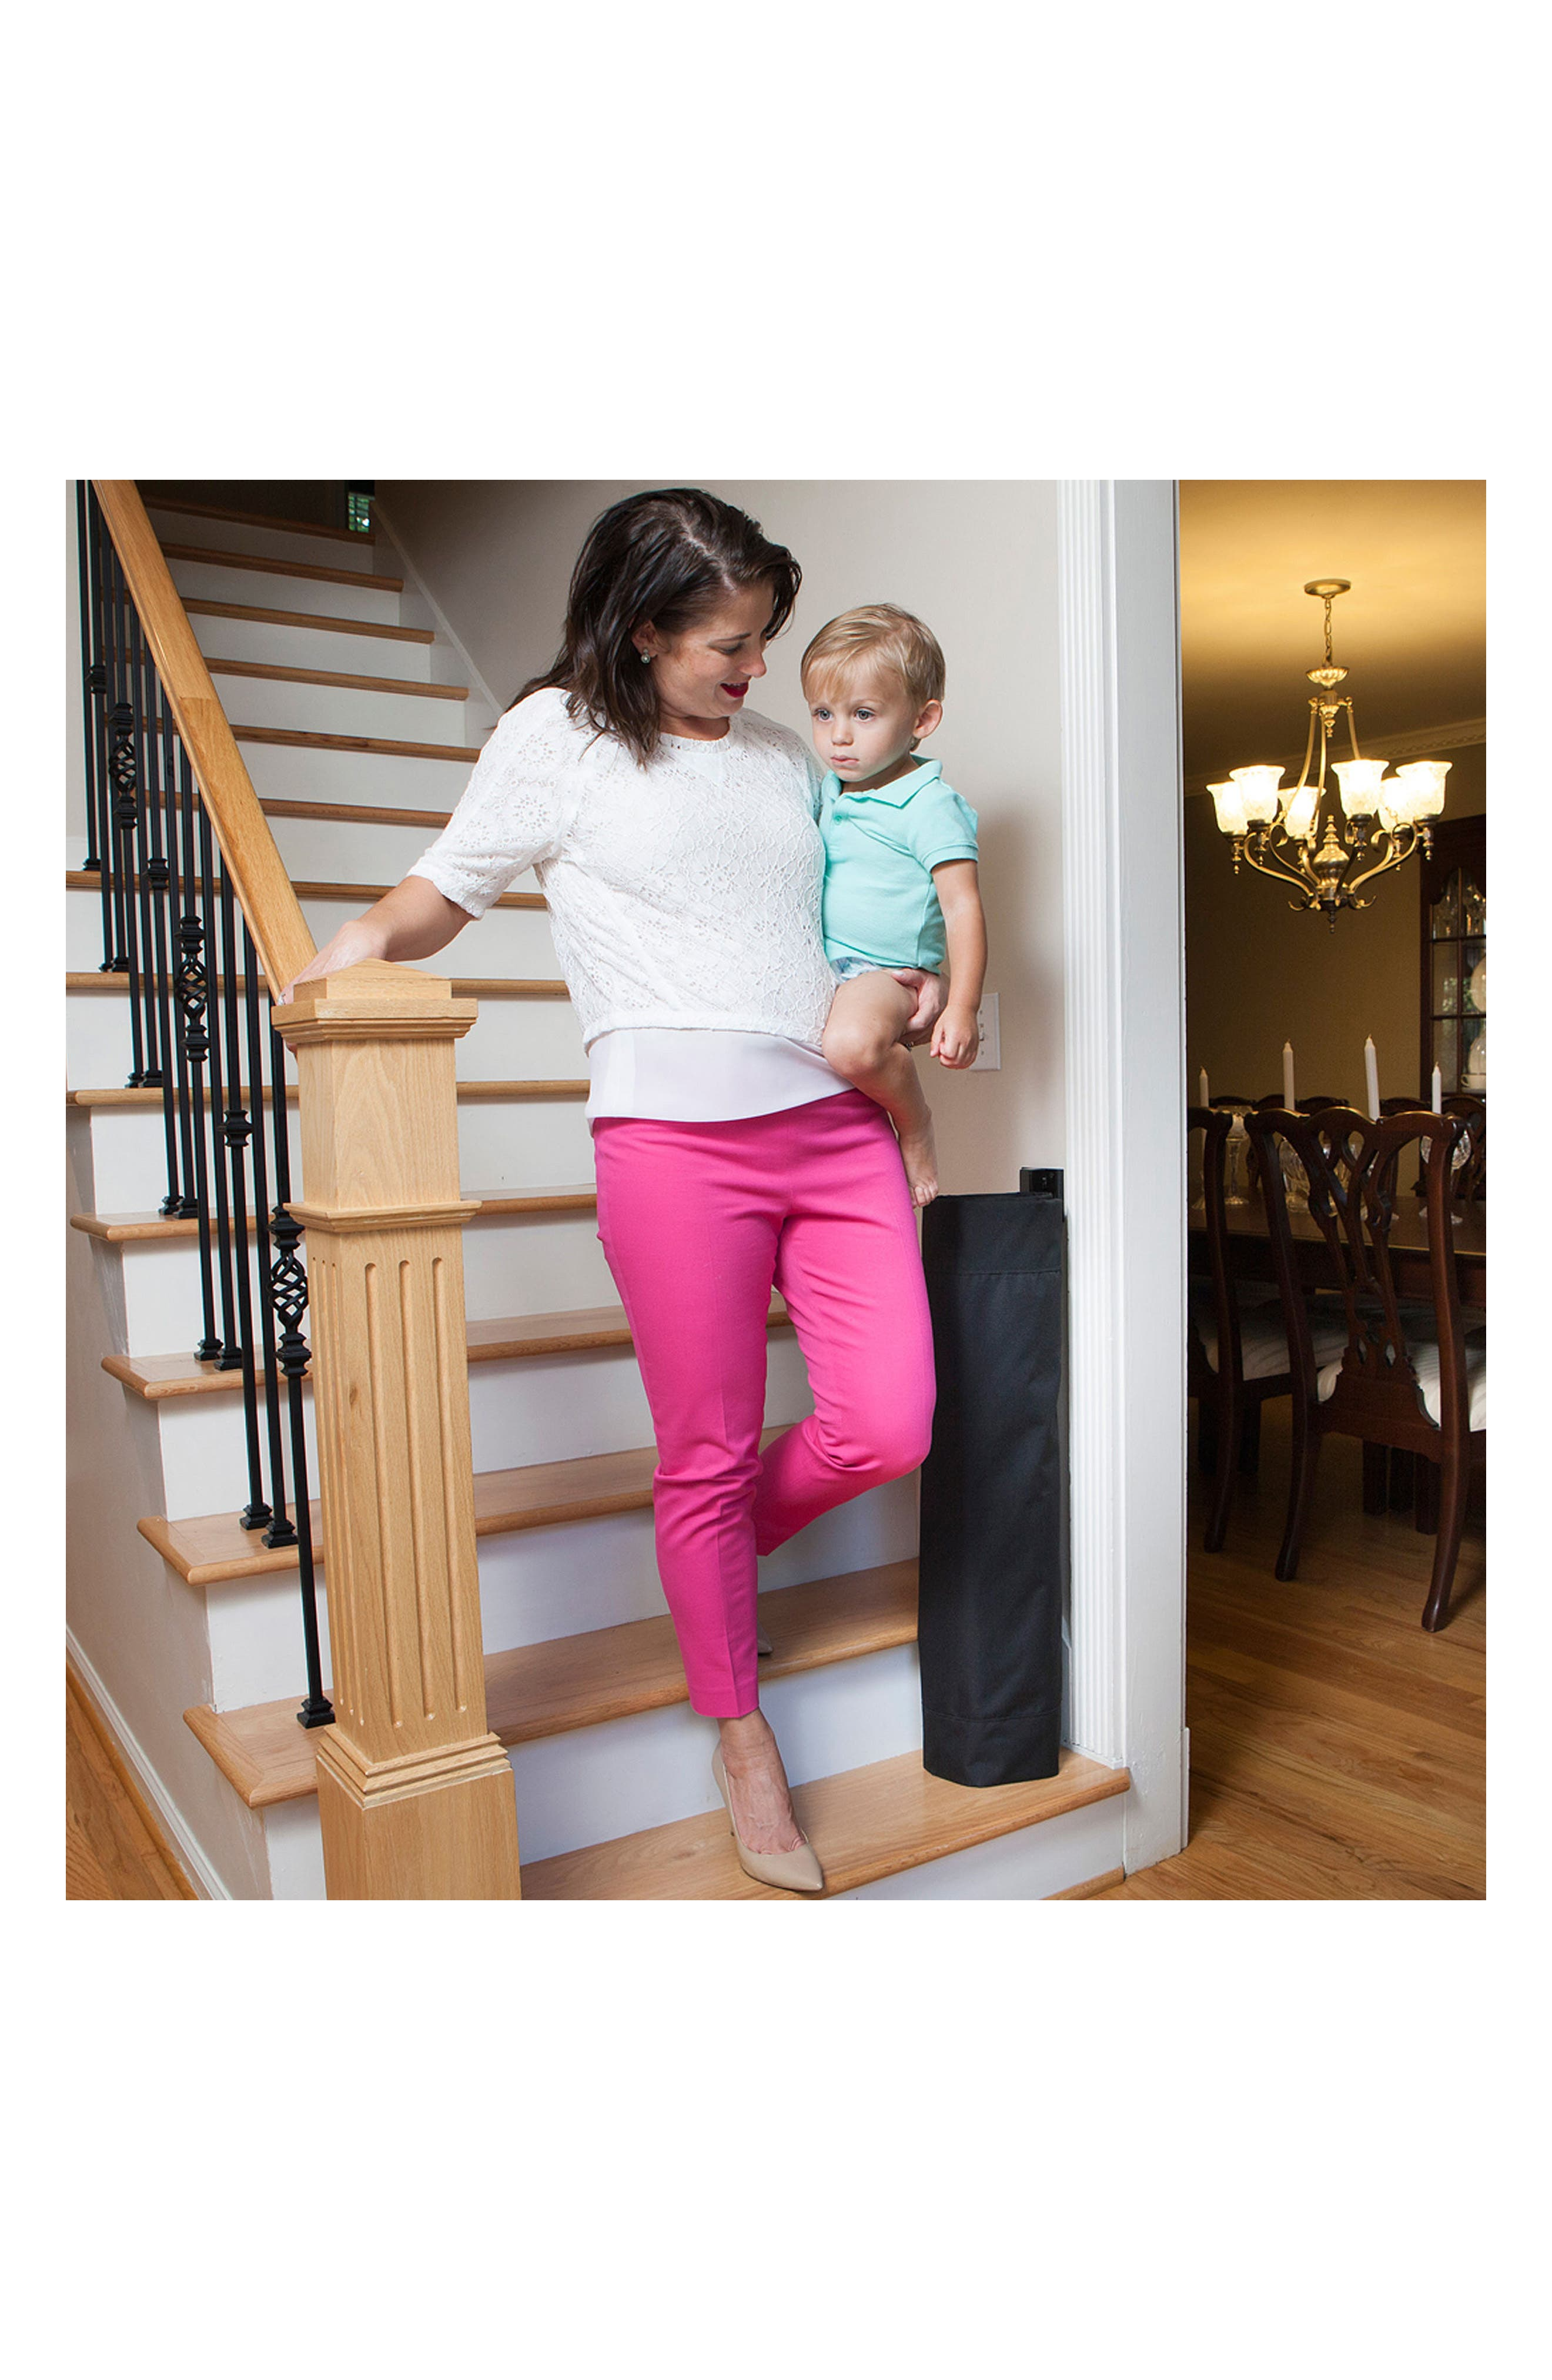 Wall to Banister Indoor Outdoor Safety Gate,                             Alternate thumbnail 10, color,                             002